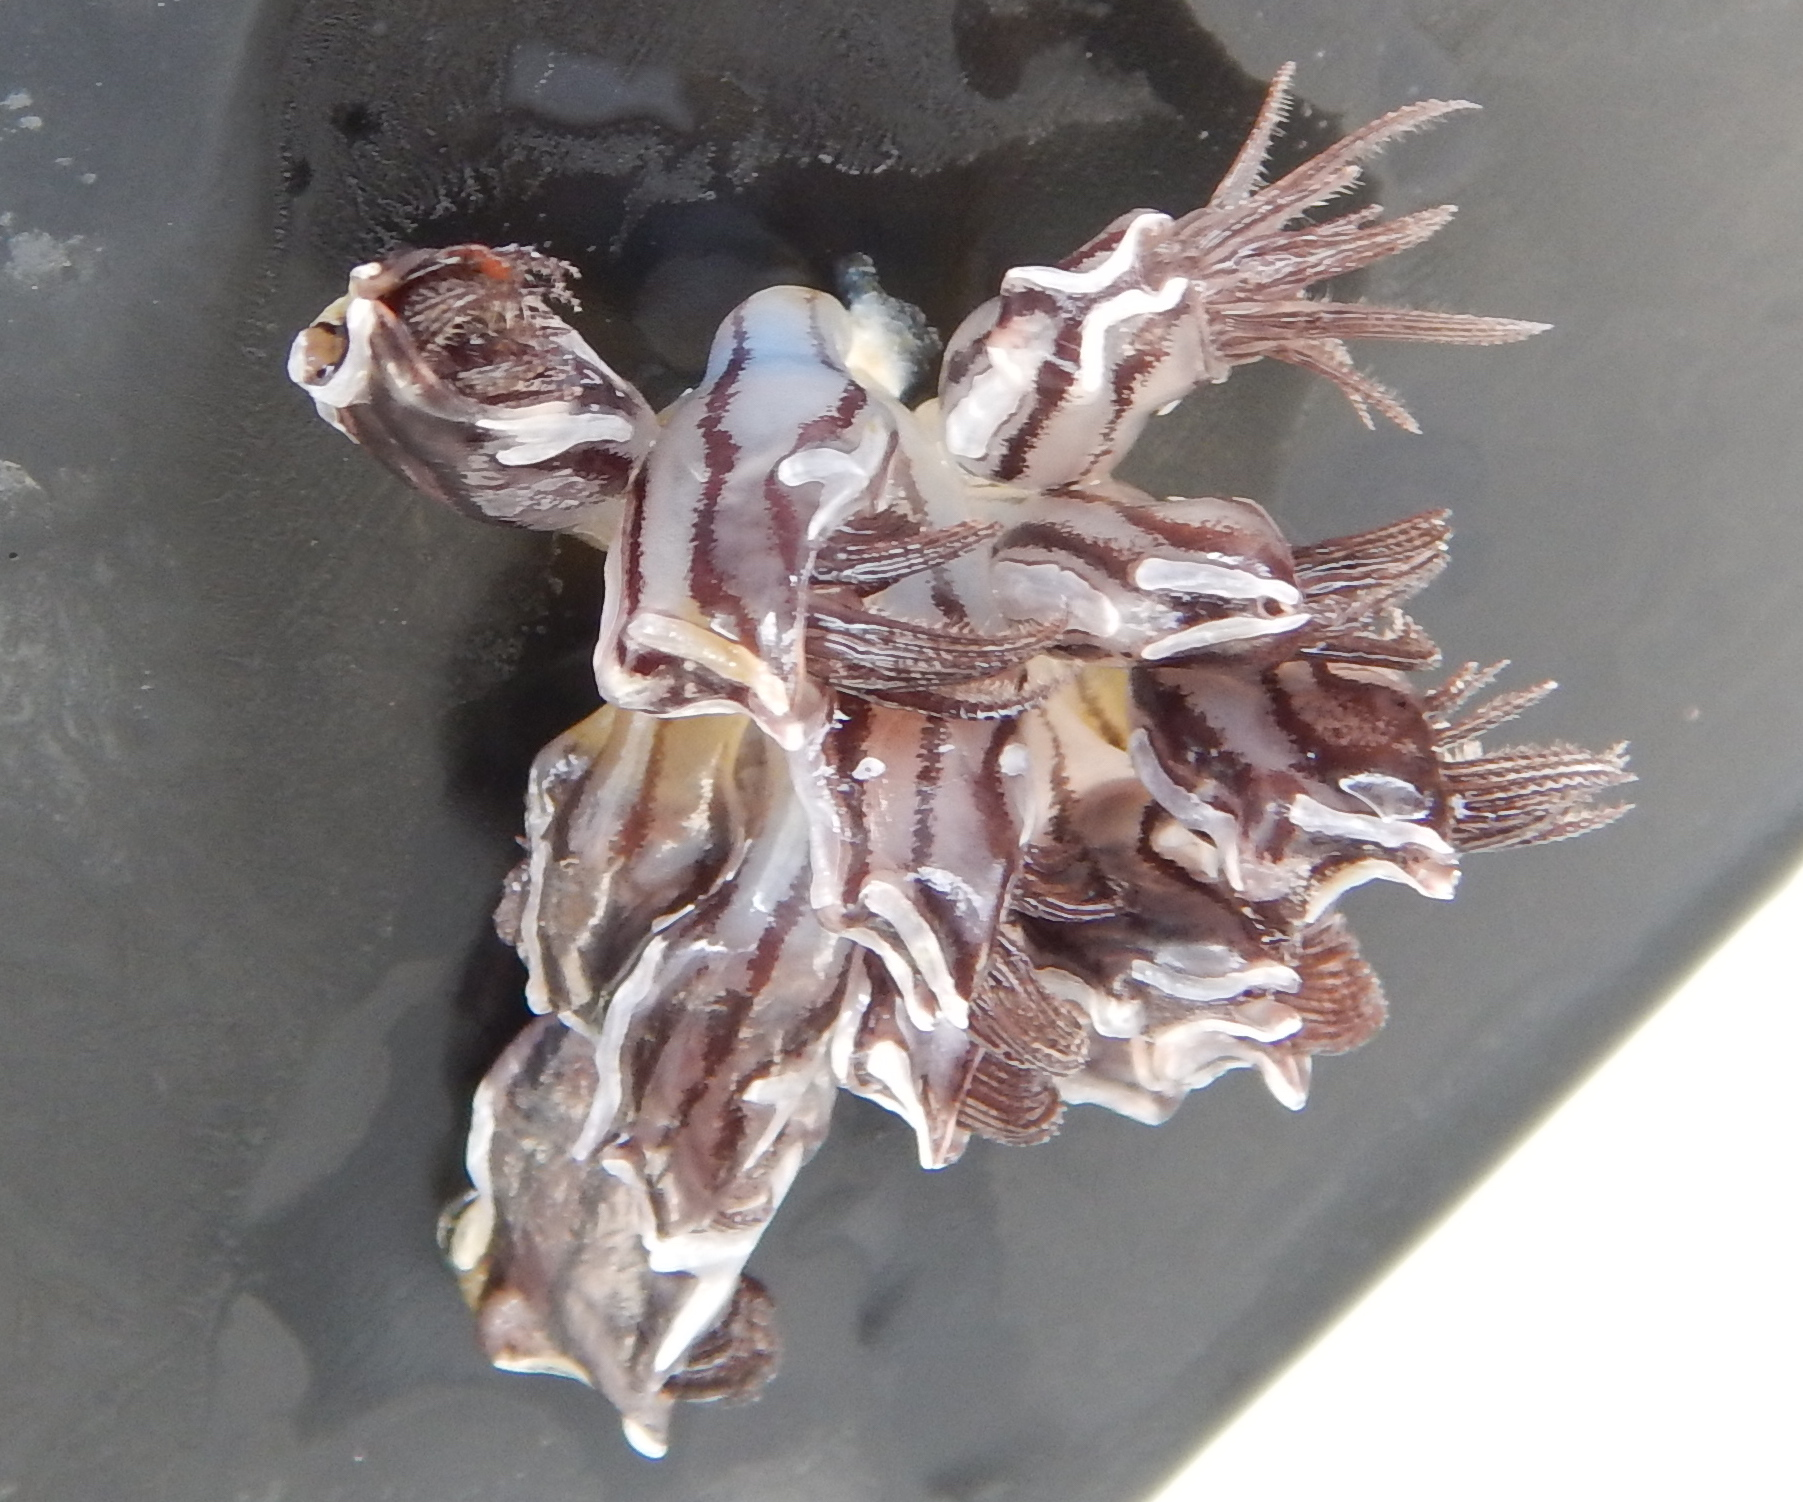 A striped gooseneck barnacle on the float (Conchederma Virgatum).